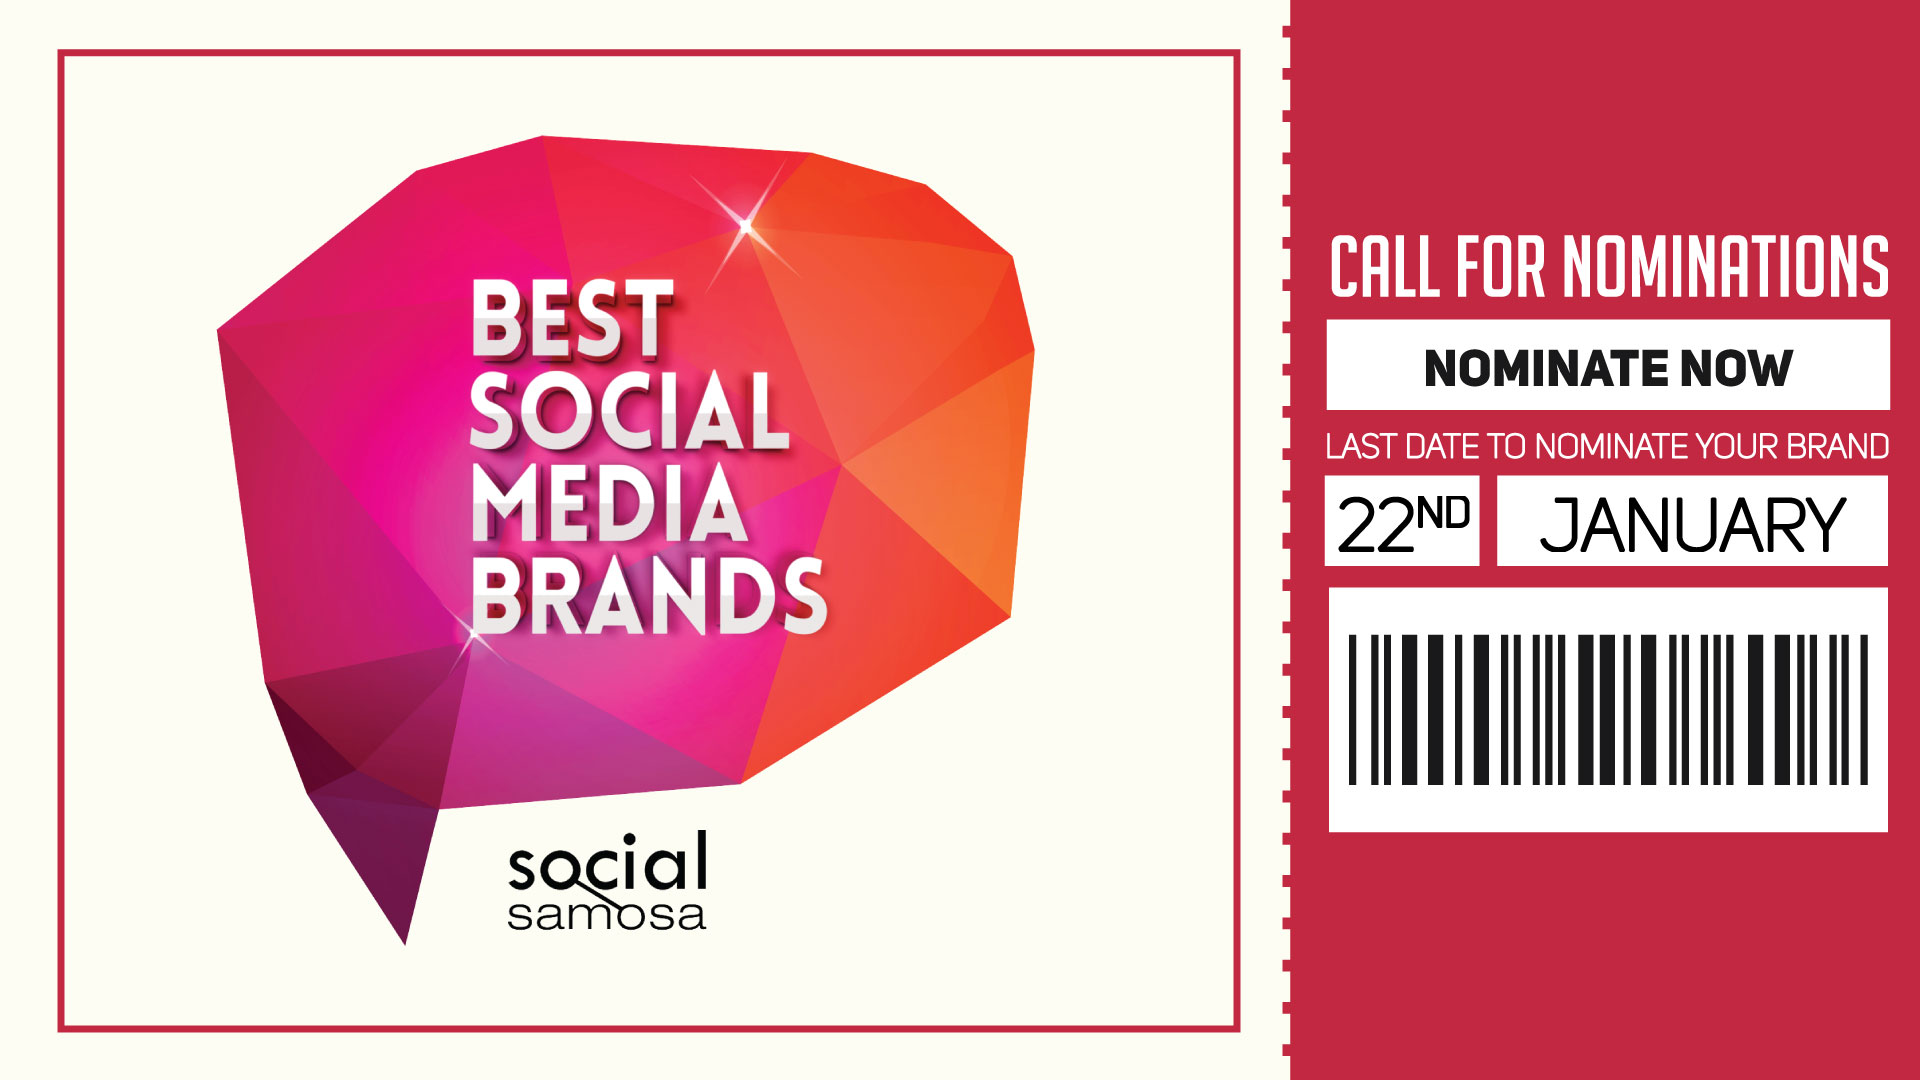 Best Social Media Brands - Nominations open now - Explara